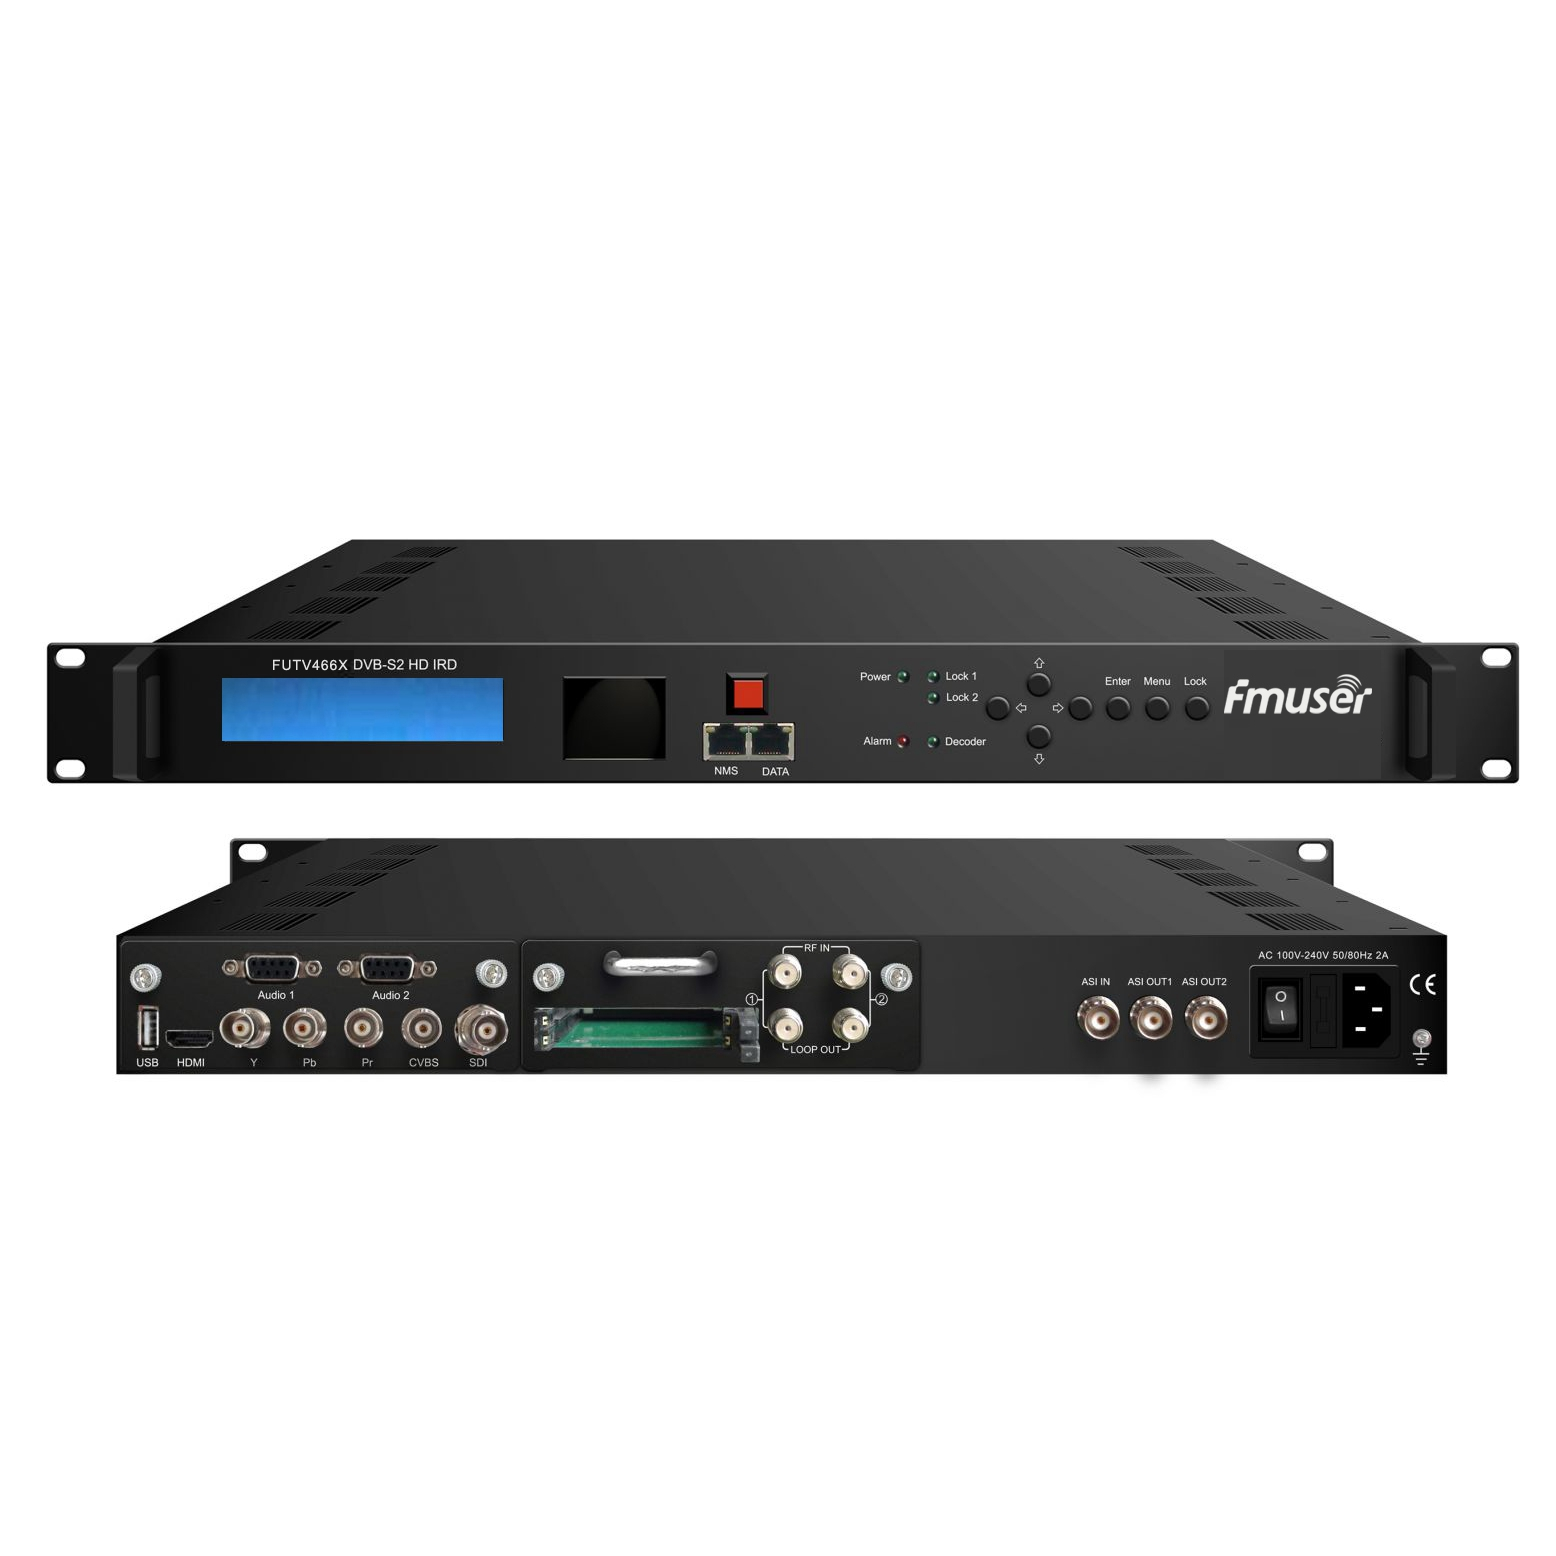 FMUSER FUTV466X Sintonizzatore 2 CAM HD IRD (2 DVB-C / T / S / S2 RF Input, 1 ASI IP In, 2 ASI 1 IP Output) con MUX BISS